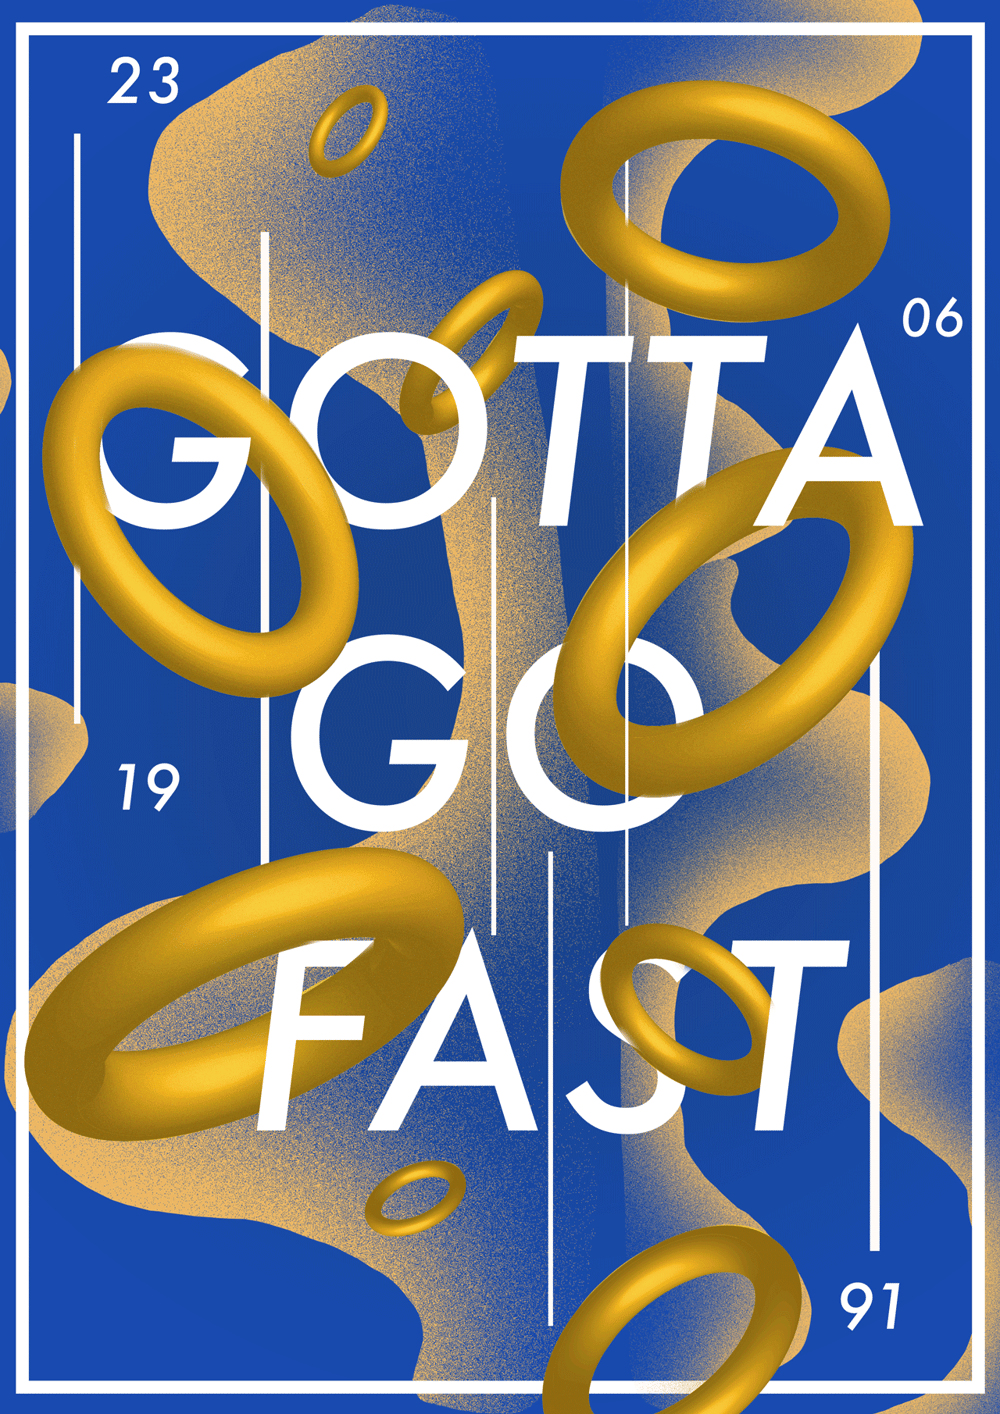 Gotta Go Fast! - image 1 - student project